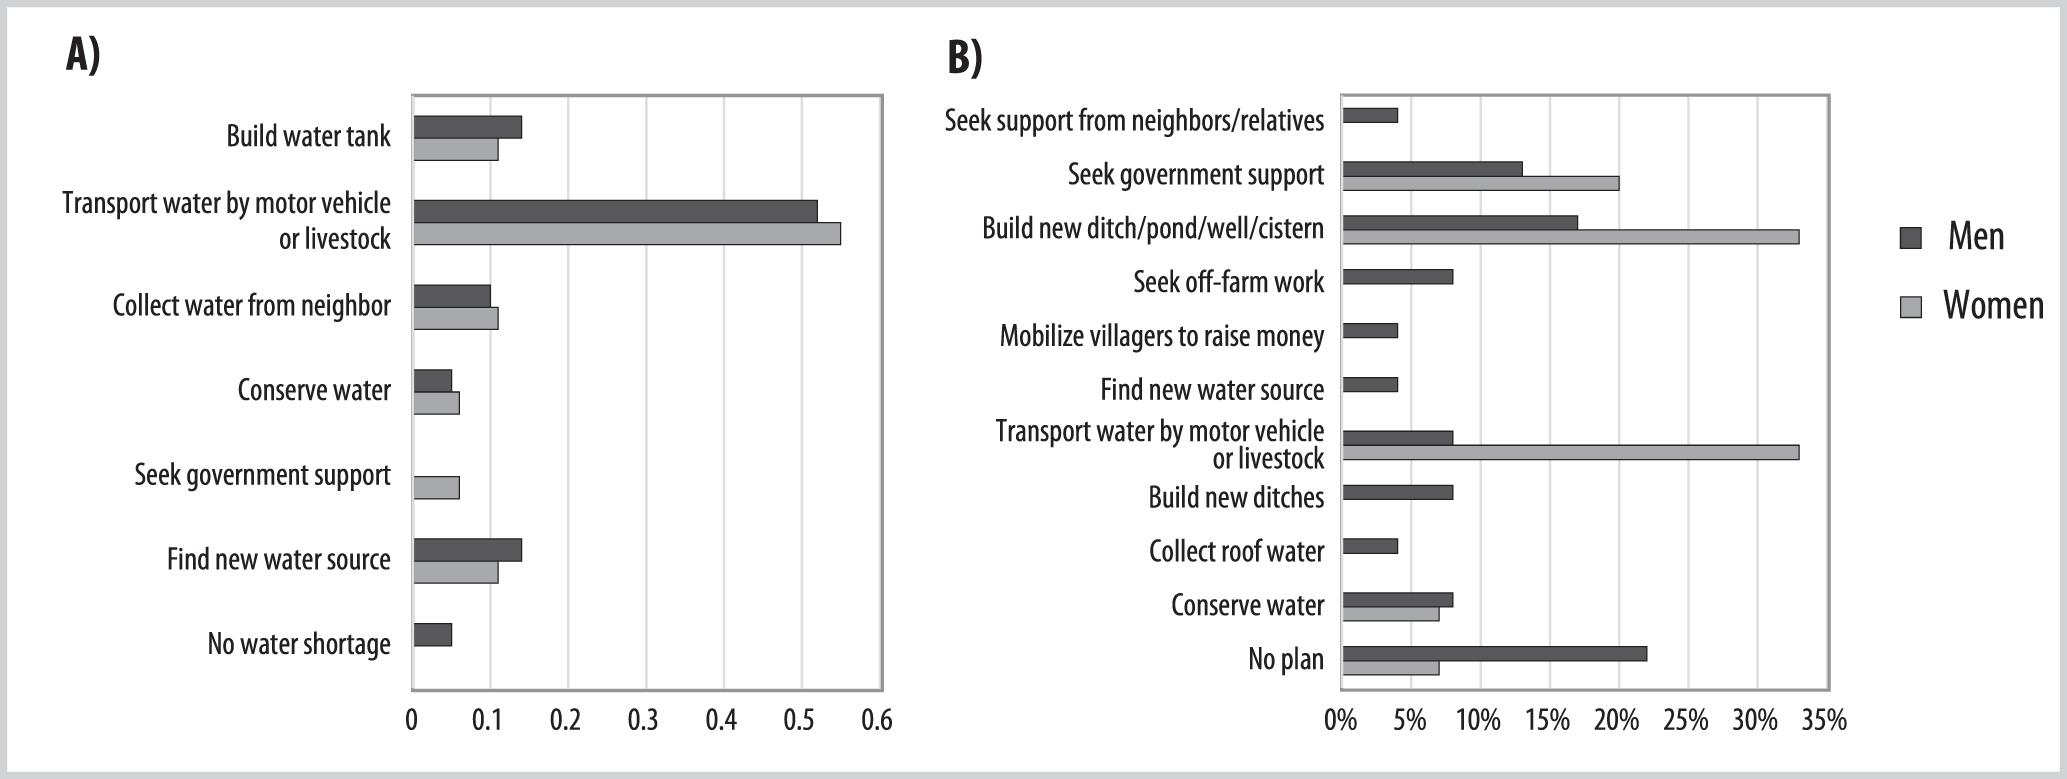 Gendered Responses to Drought in Yunnan Province, China